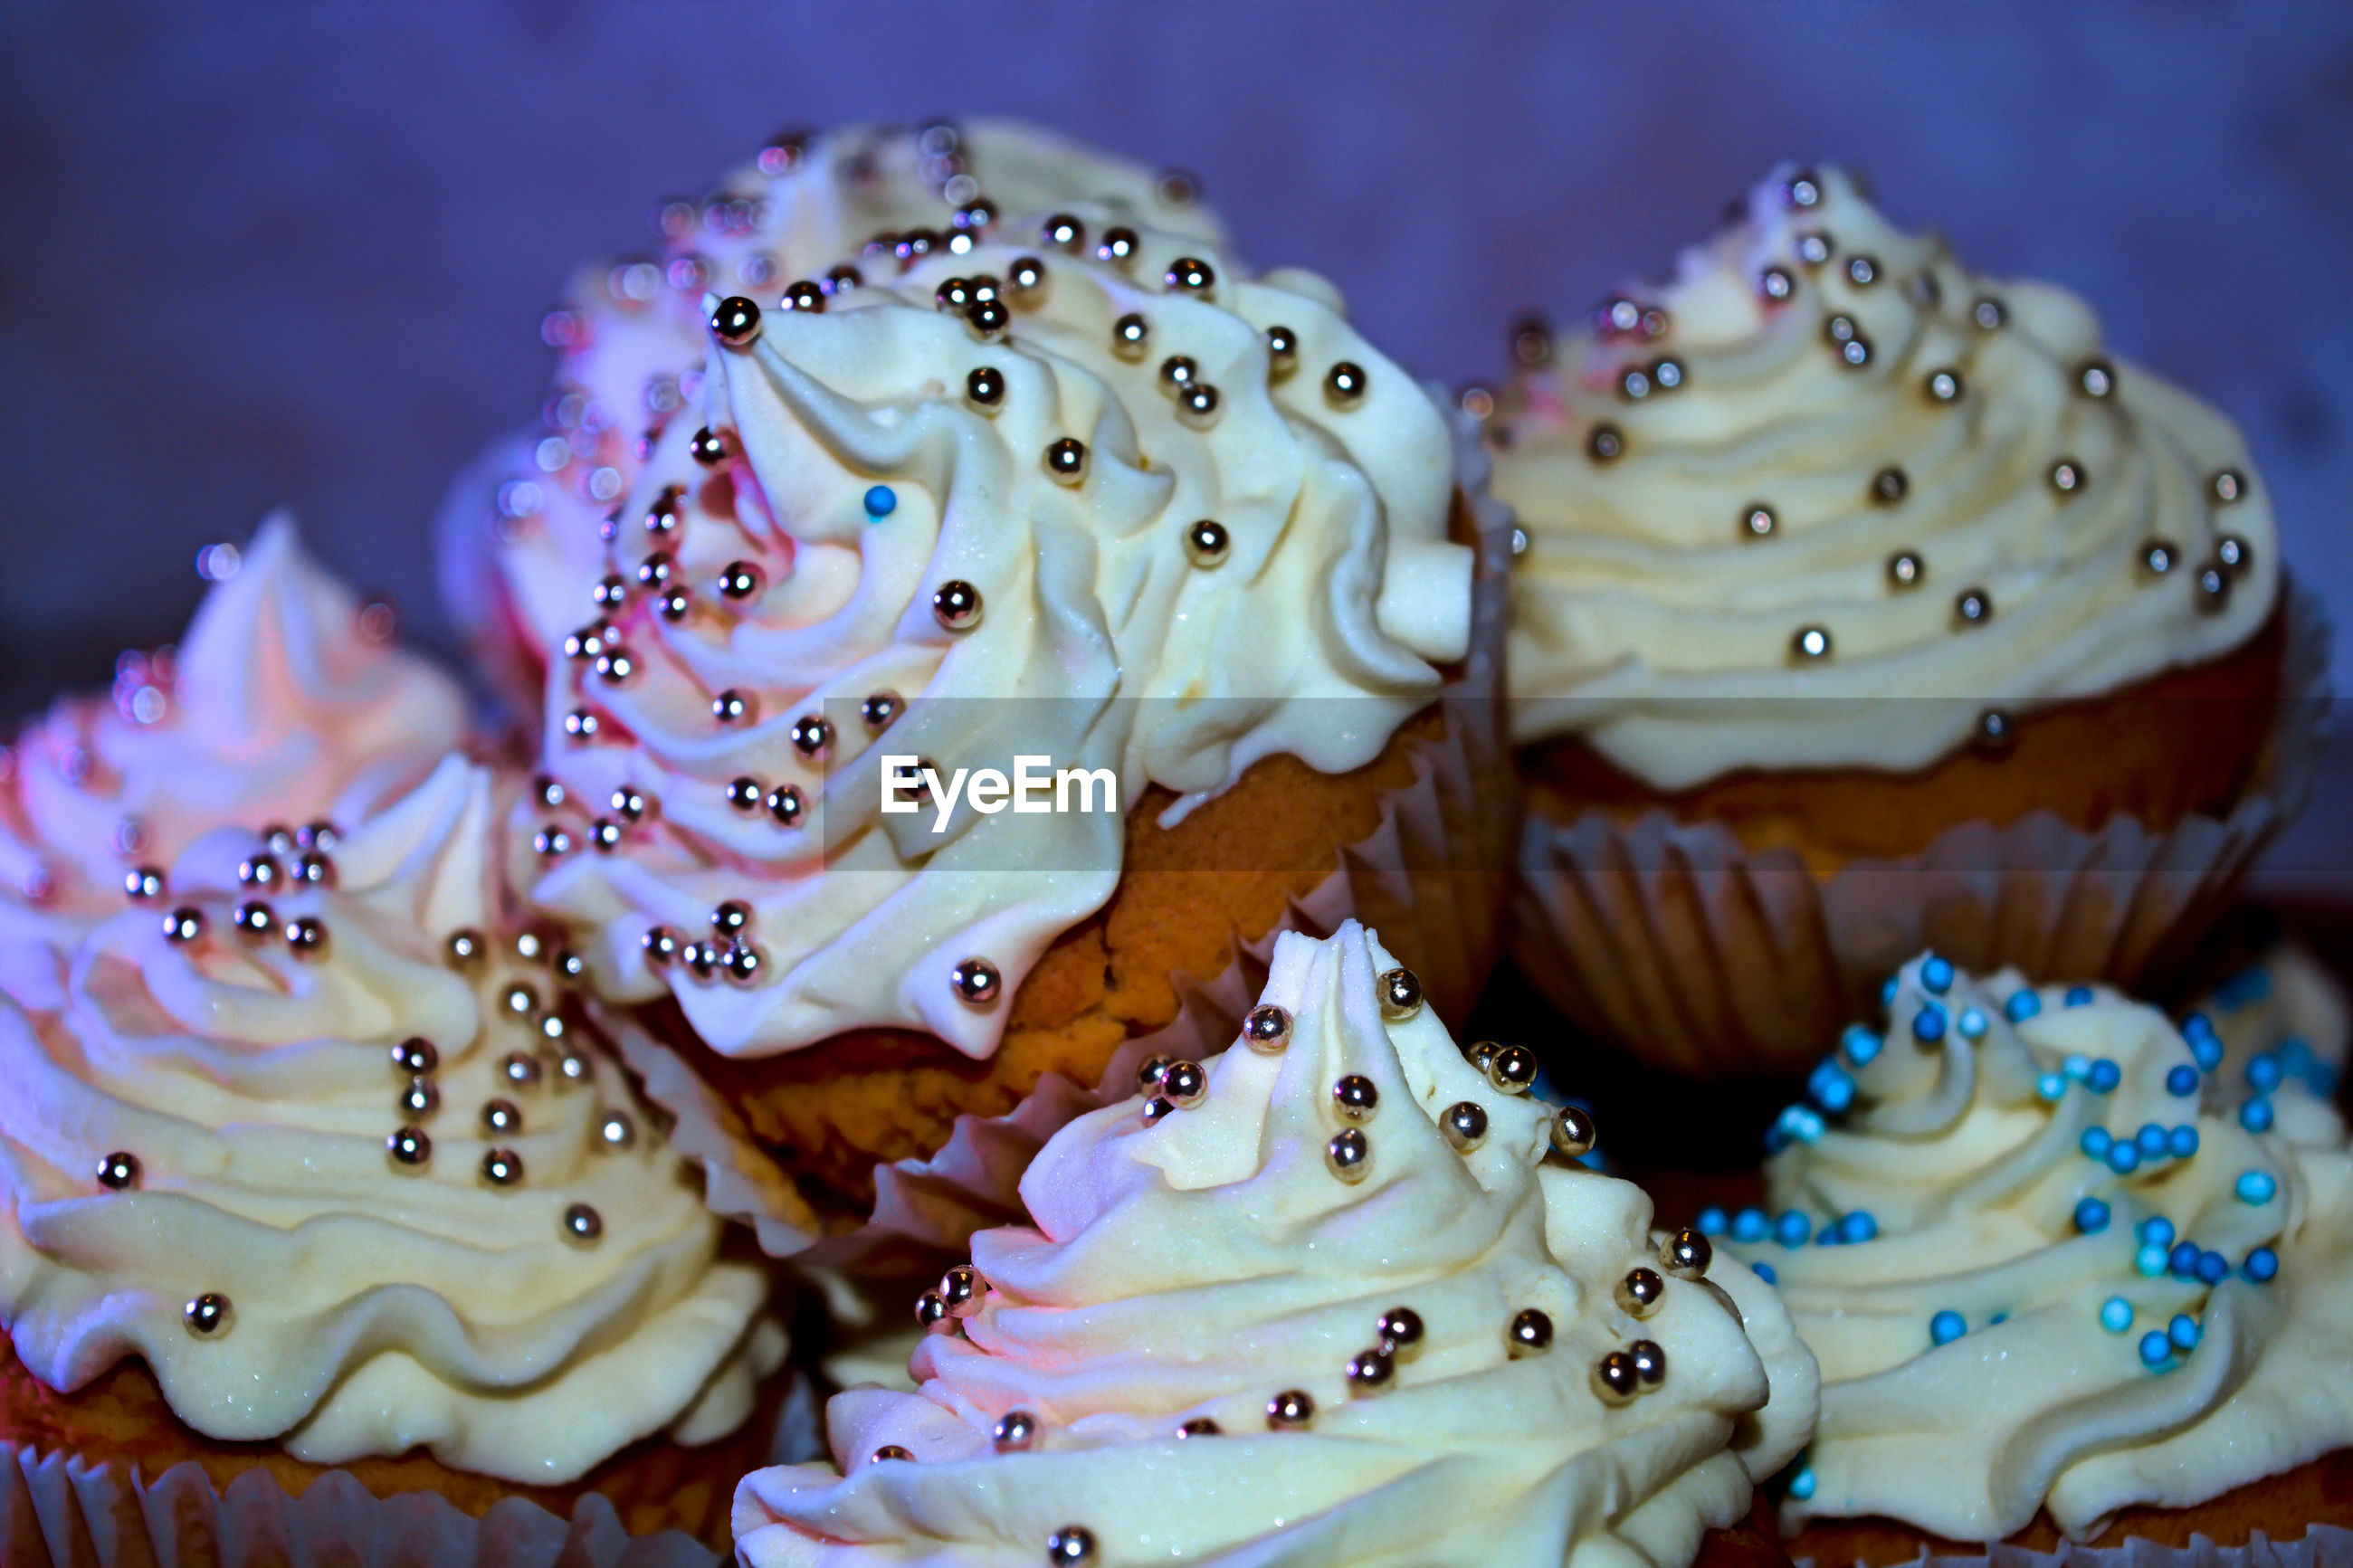 CLOSE-UP OF CUPCAKES ON CAKE